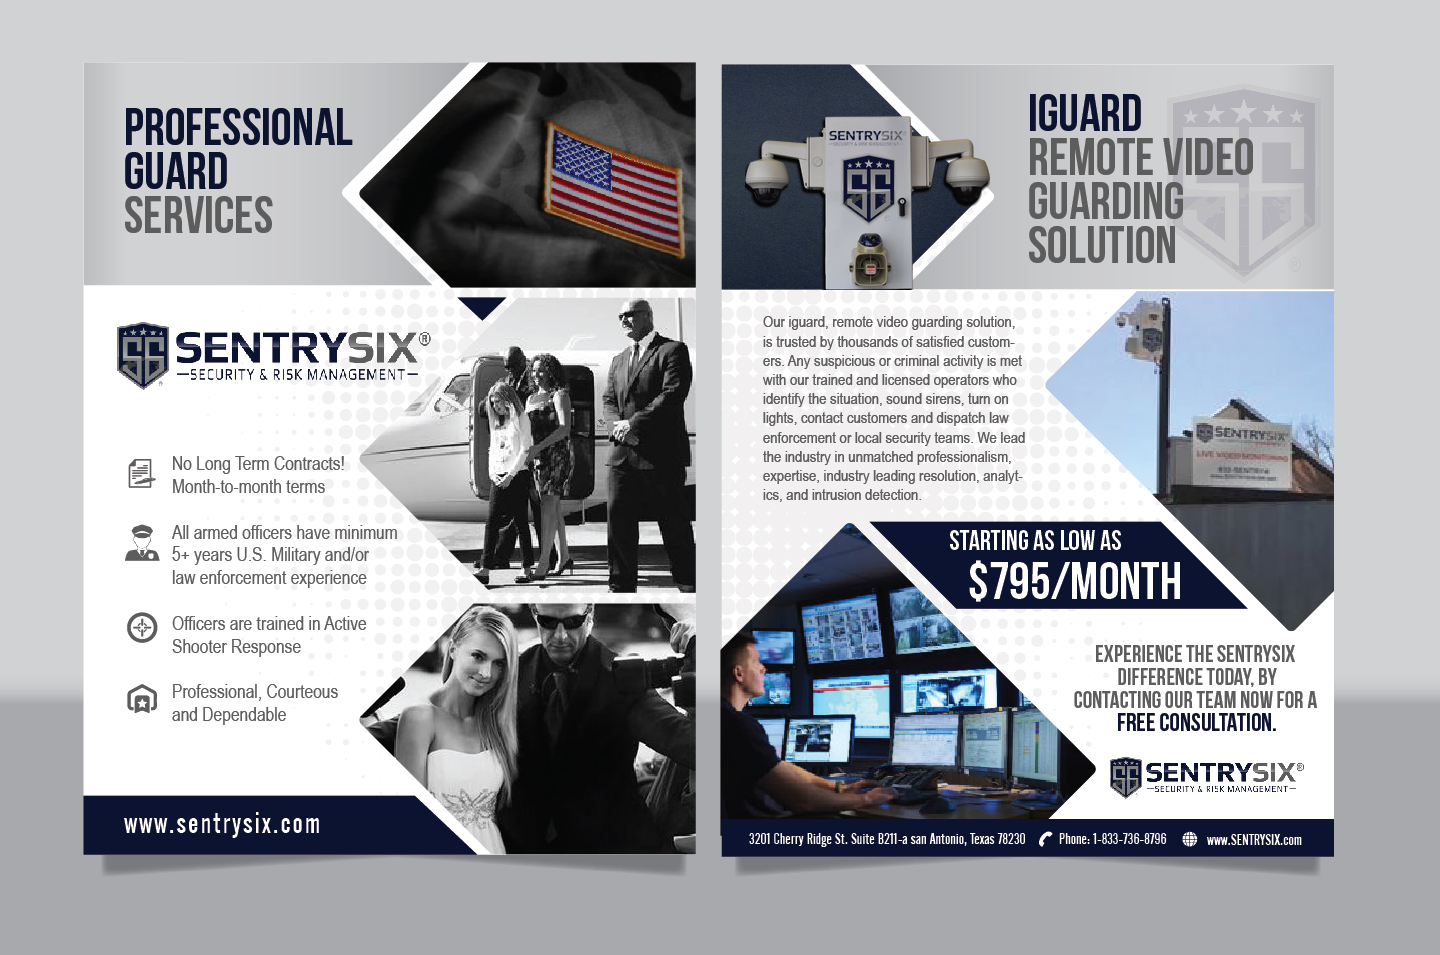 serious masculine security service flyer design for a company by achiver design 17099853. Black Bedroom Furniture Sets. Home Design Ideas